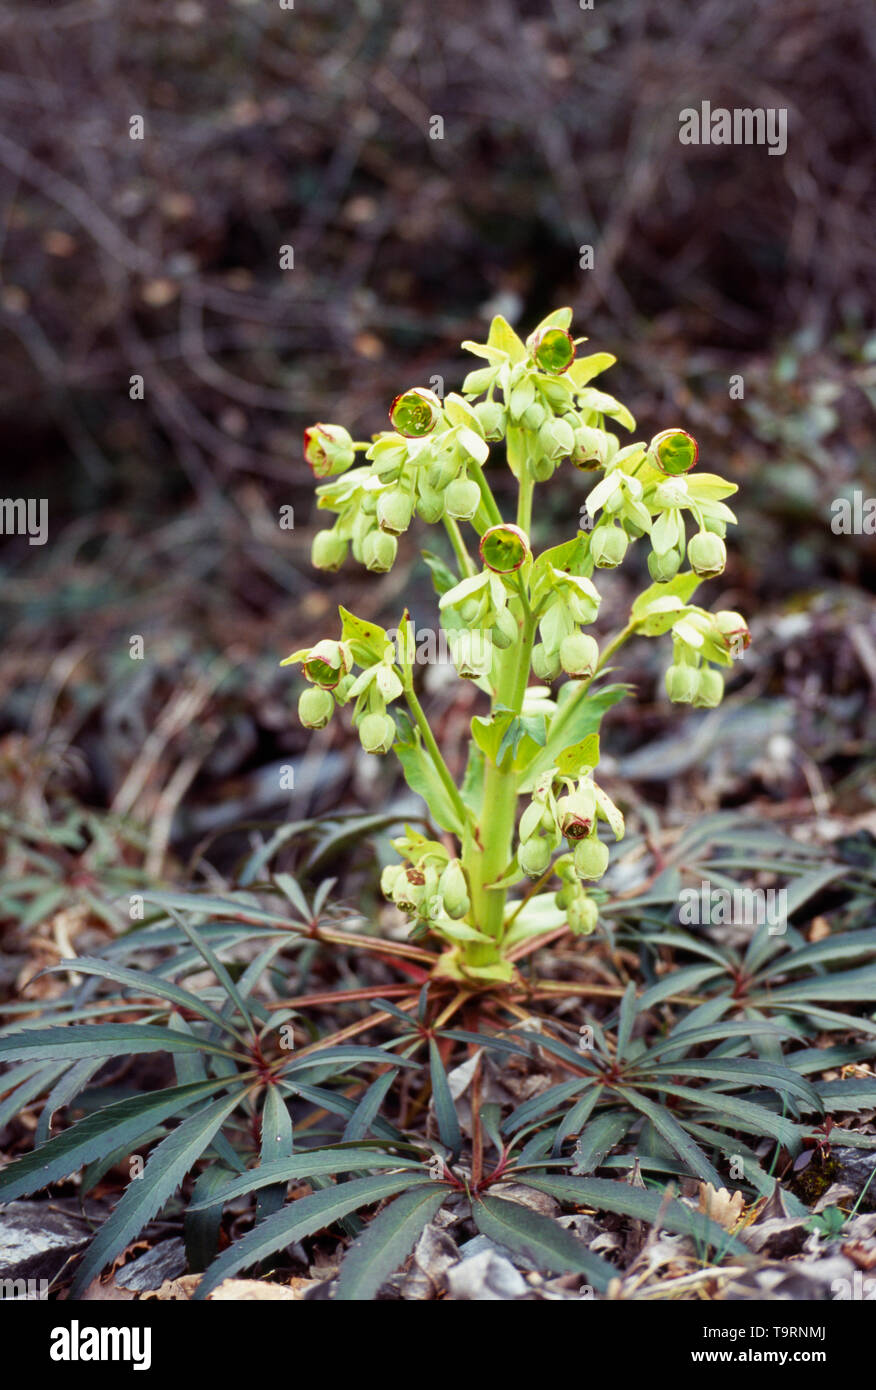 France, Natural History, Close up shot of Plant Stinking Hellebore ( Helleborus Foetidus) - Stock Image